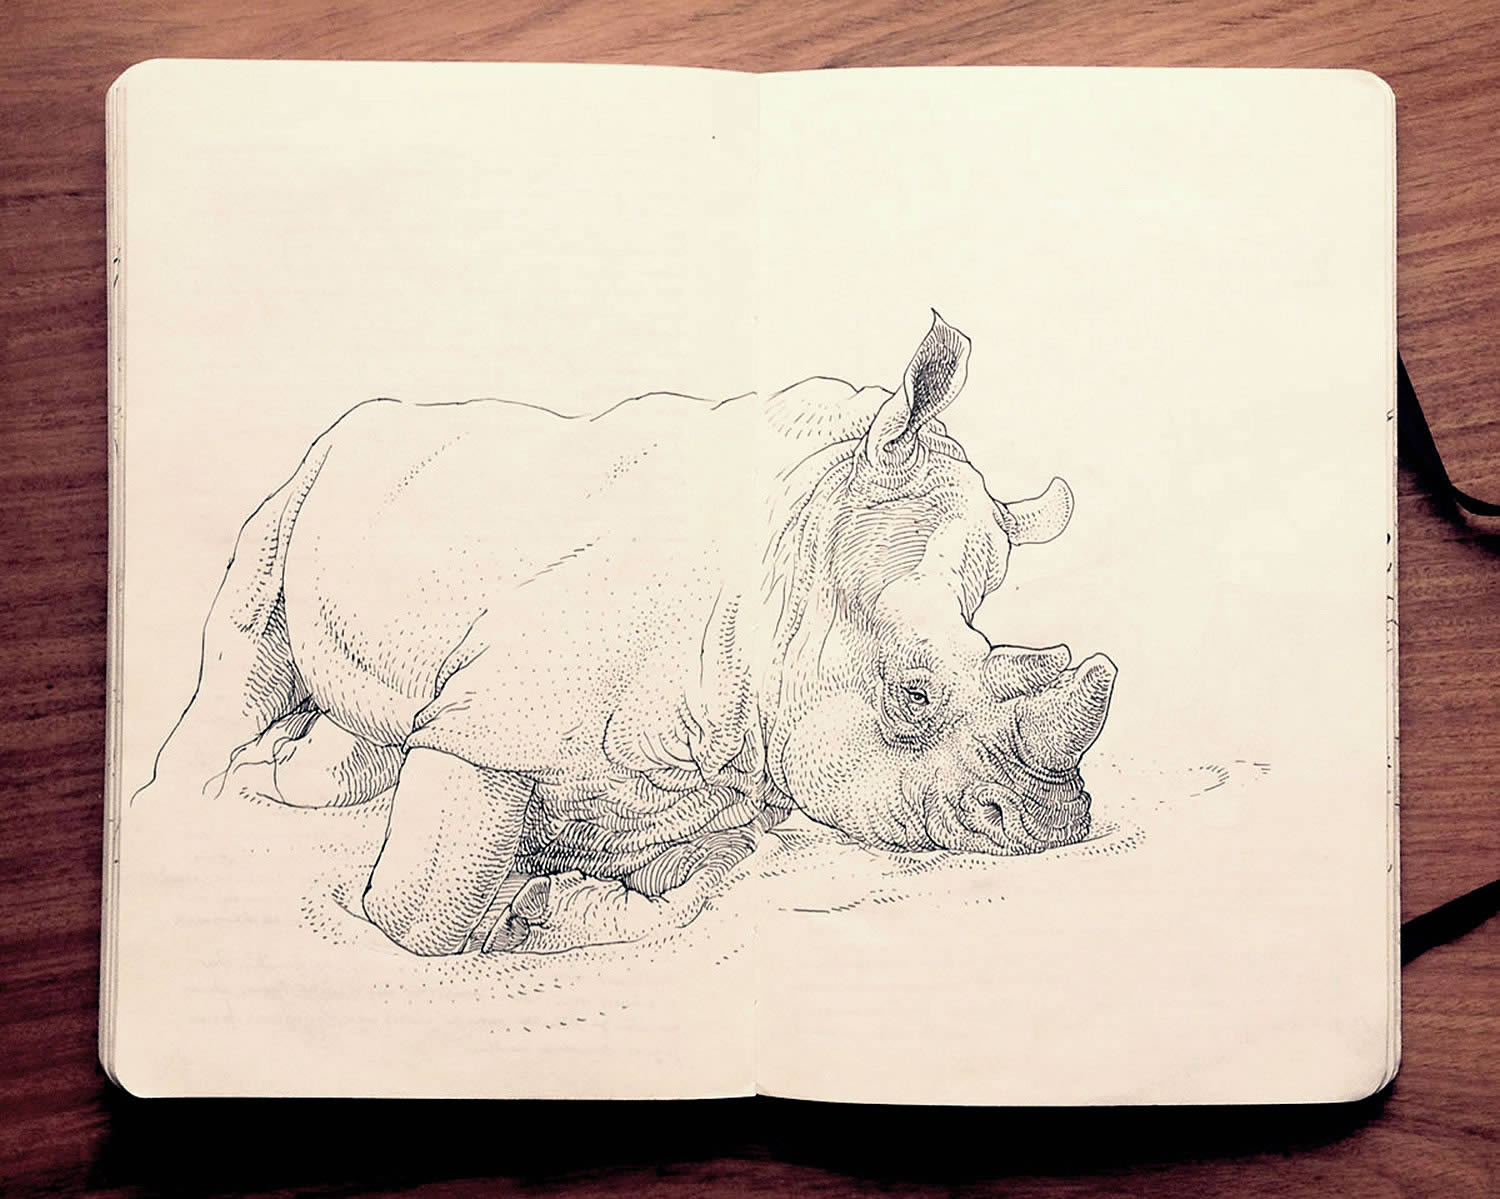 rino sketchbook drawing by Jared Muralt